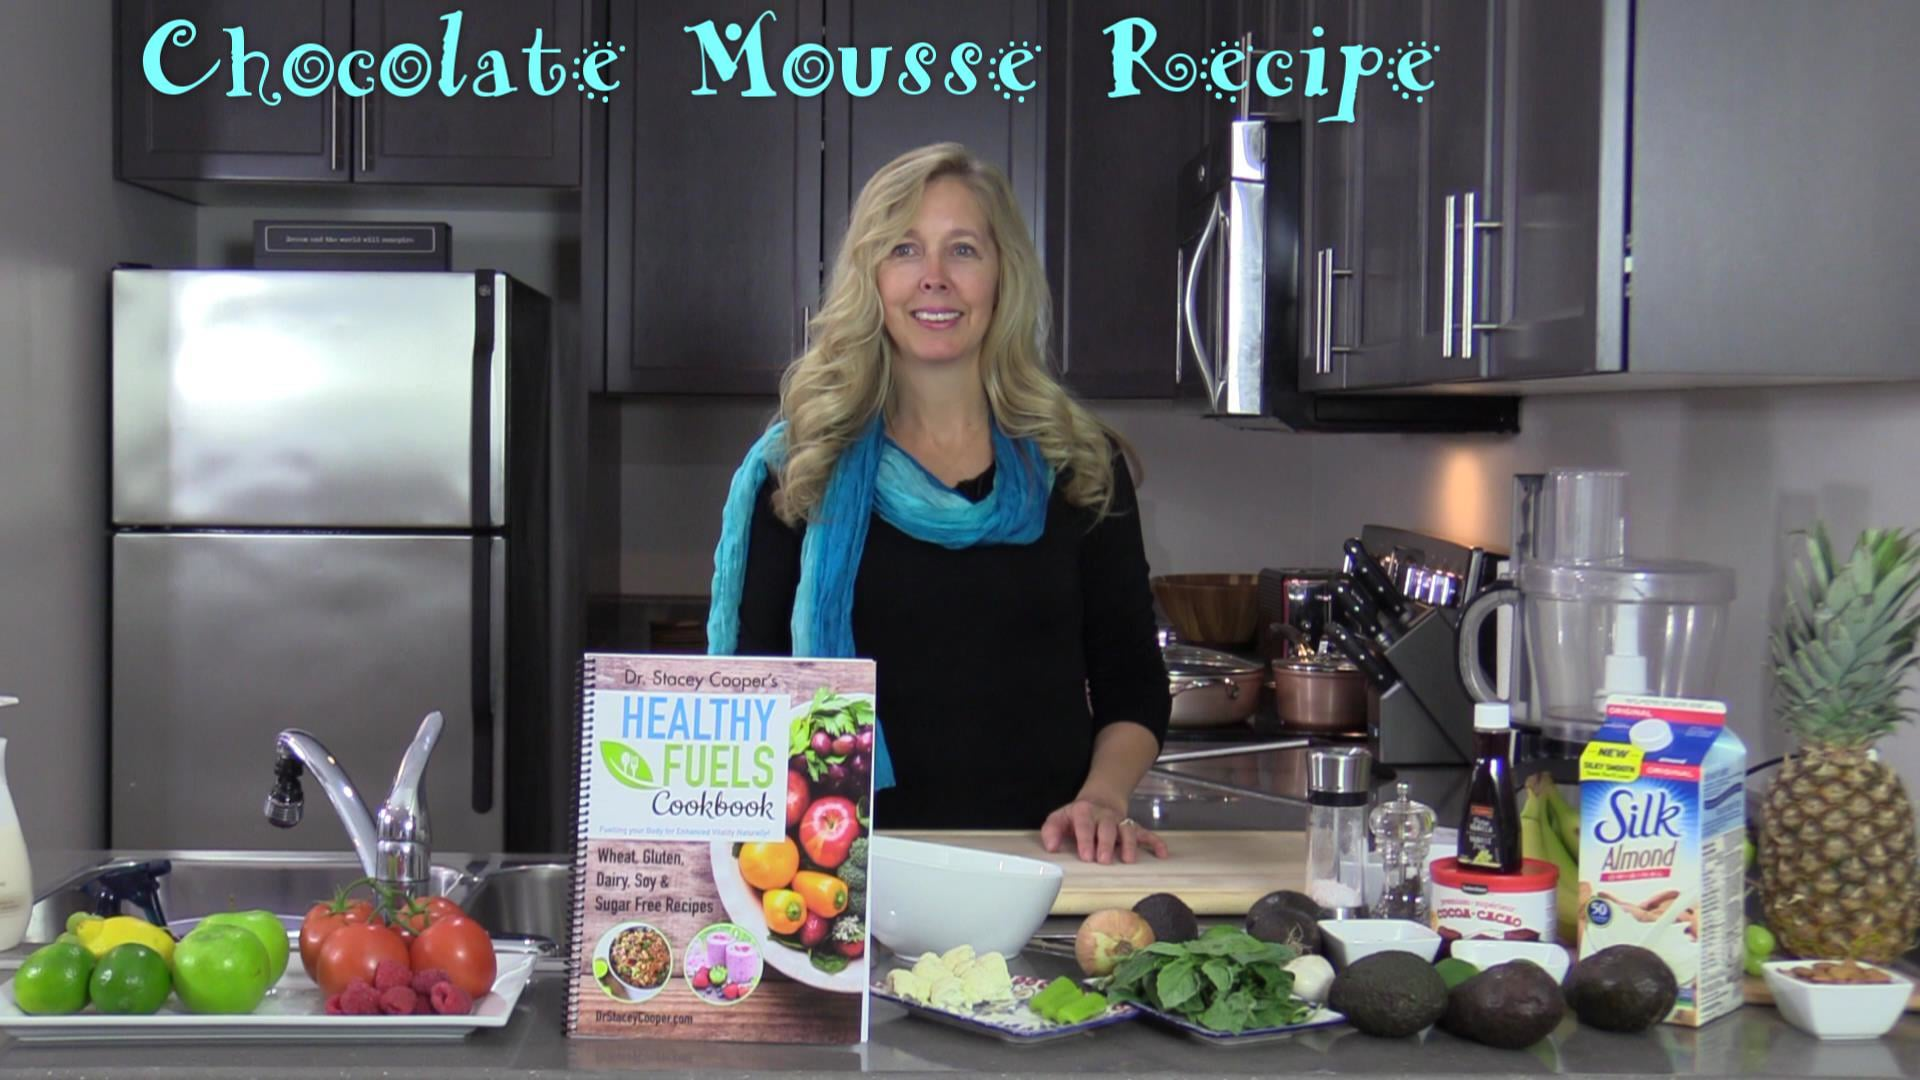 Healthy Cooking with Dr. Stacey Cooper